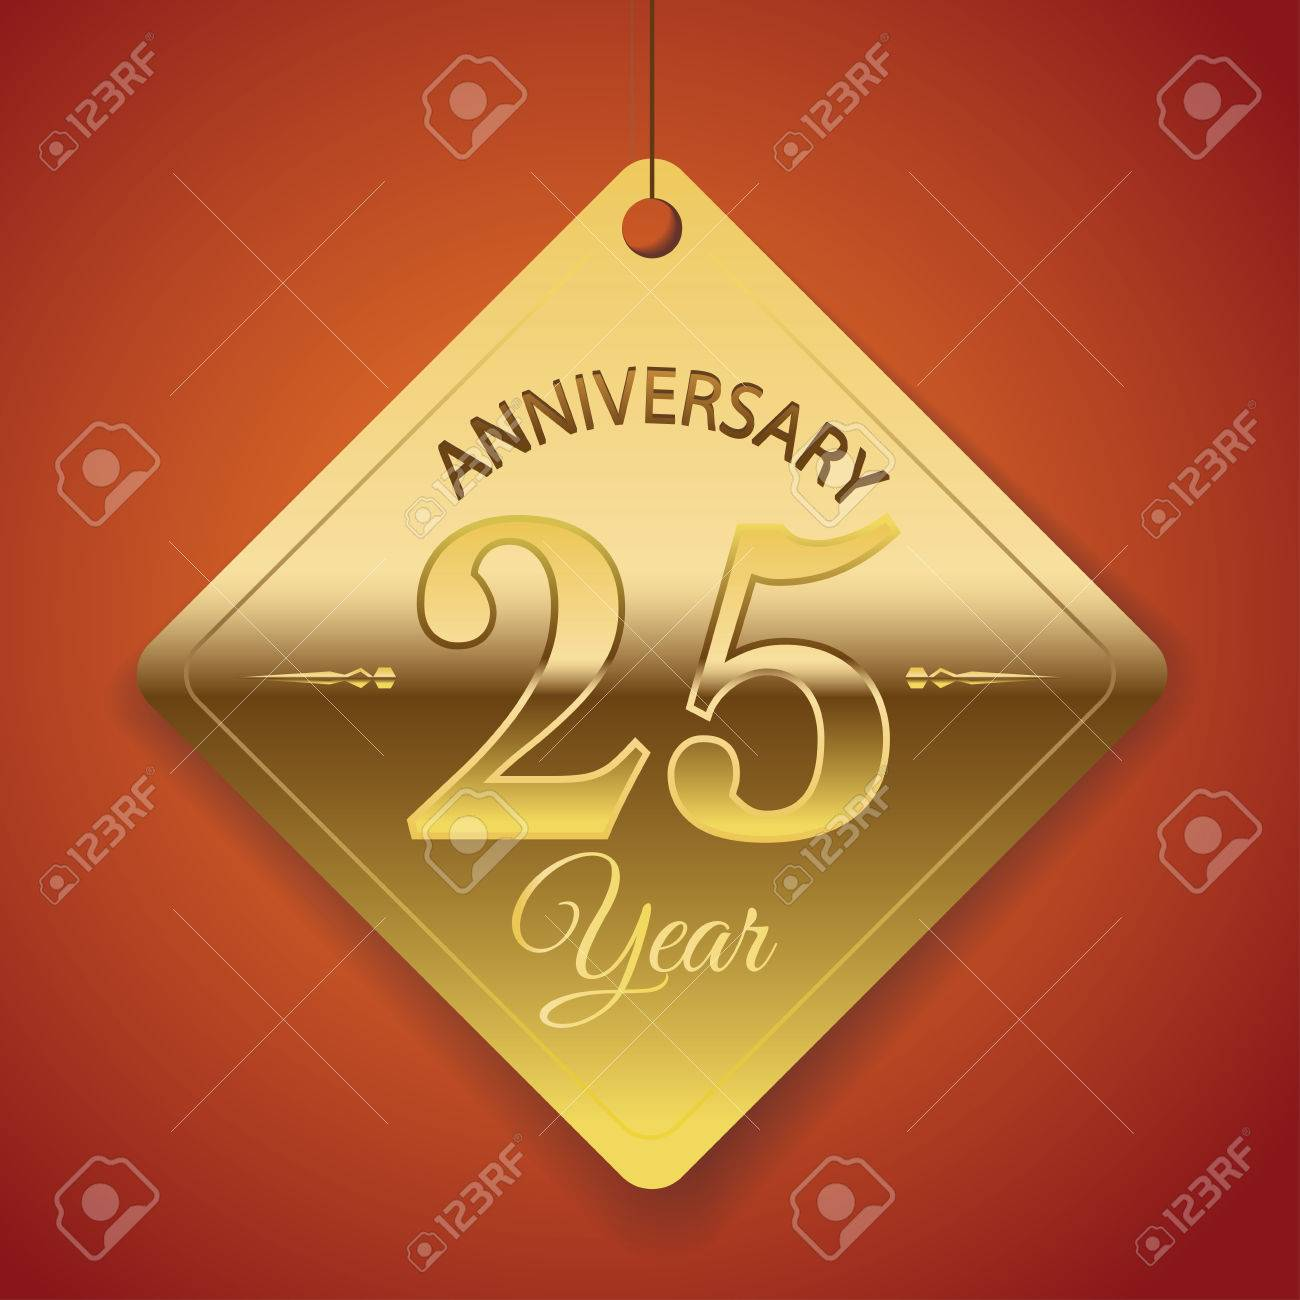 Poster backgrounds design - 25th Anniversary Poster Template Tag Design Vector Background Stock Vector 26934073